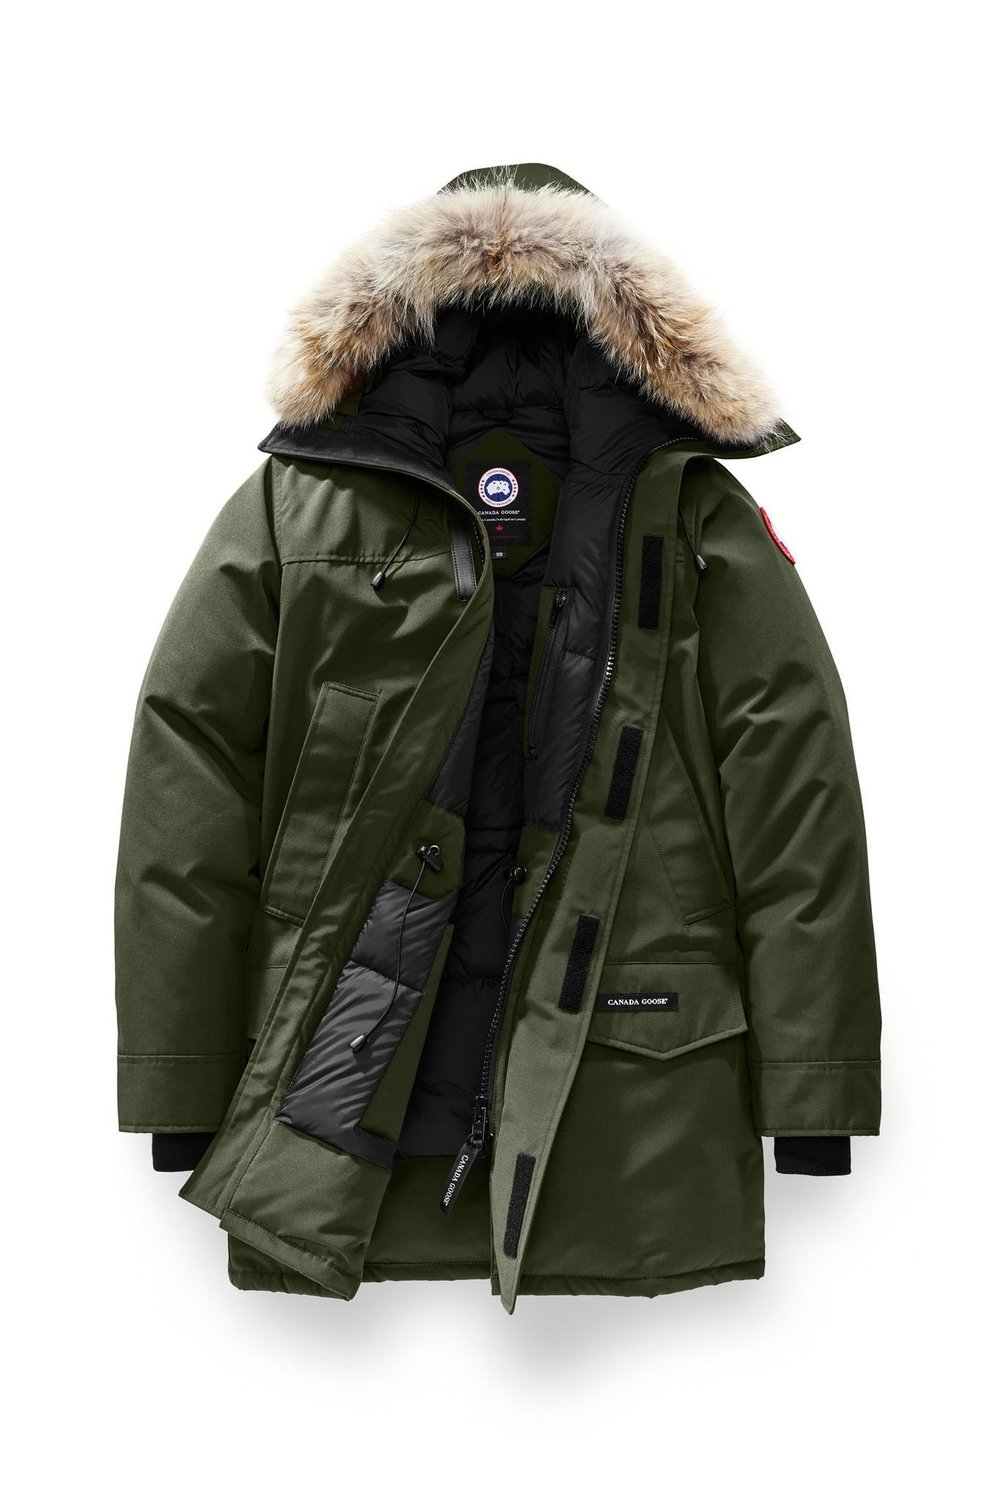 langford parka military green.jpg